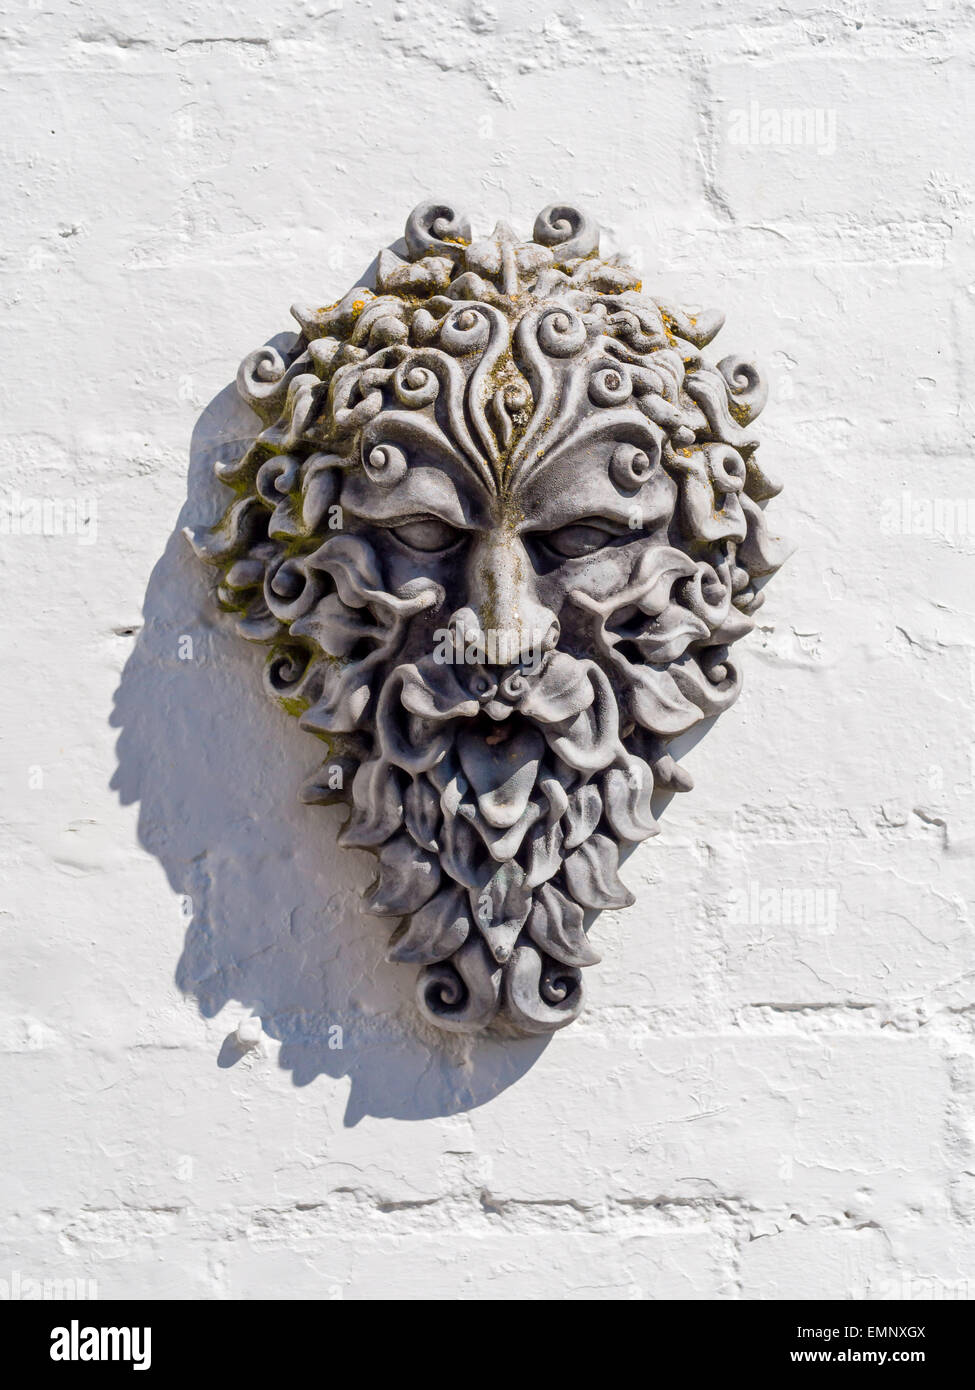 Green Man Head Sculpture Garden Ornament Sun Sunshine